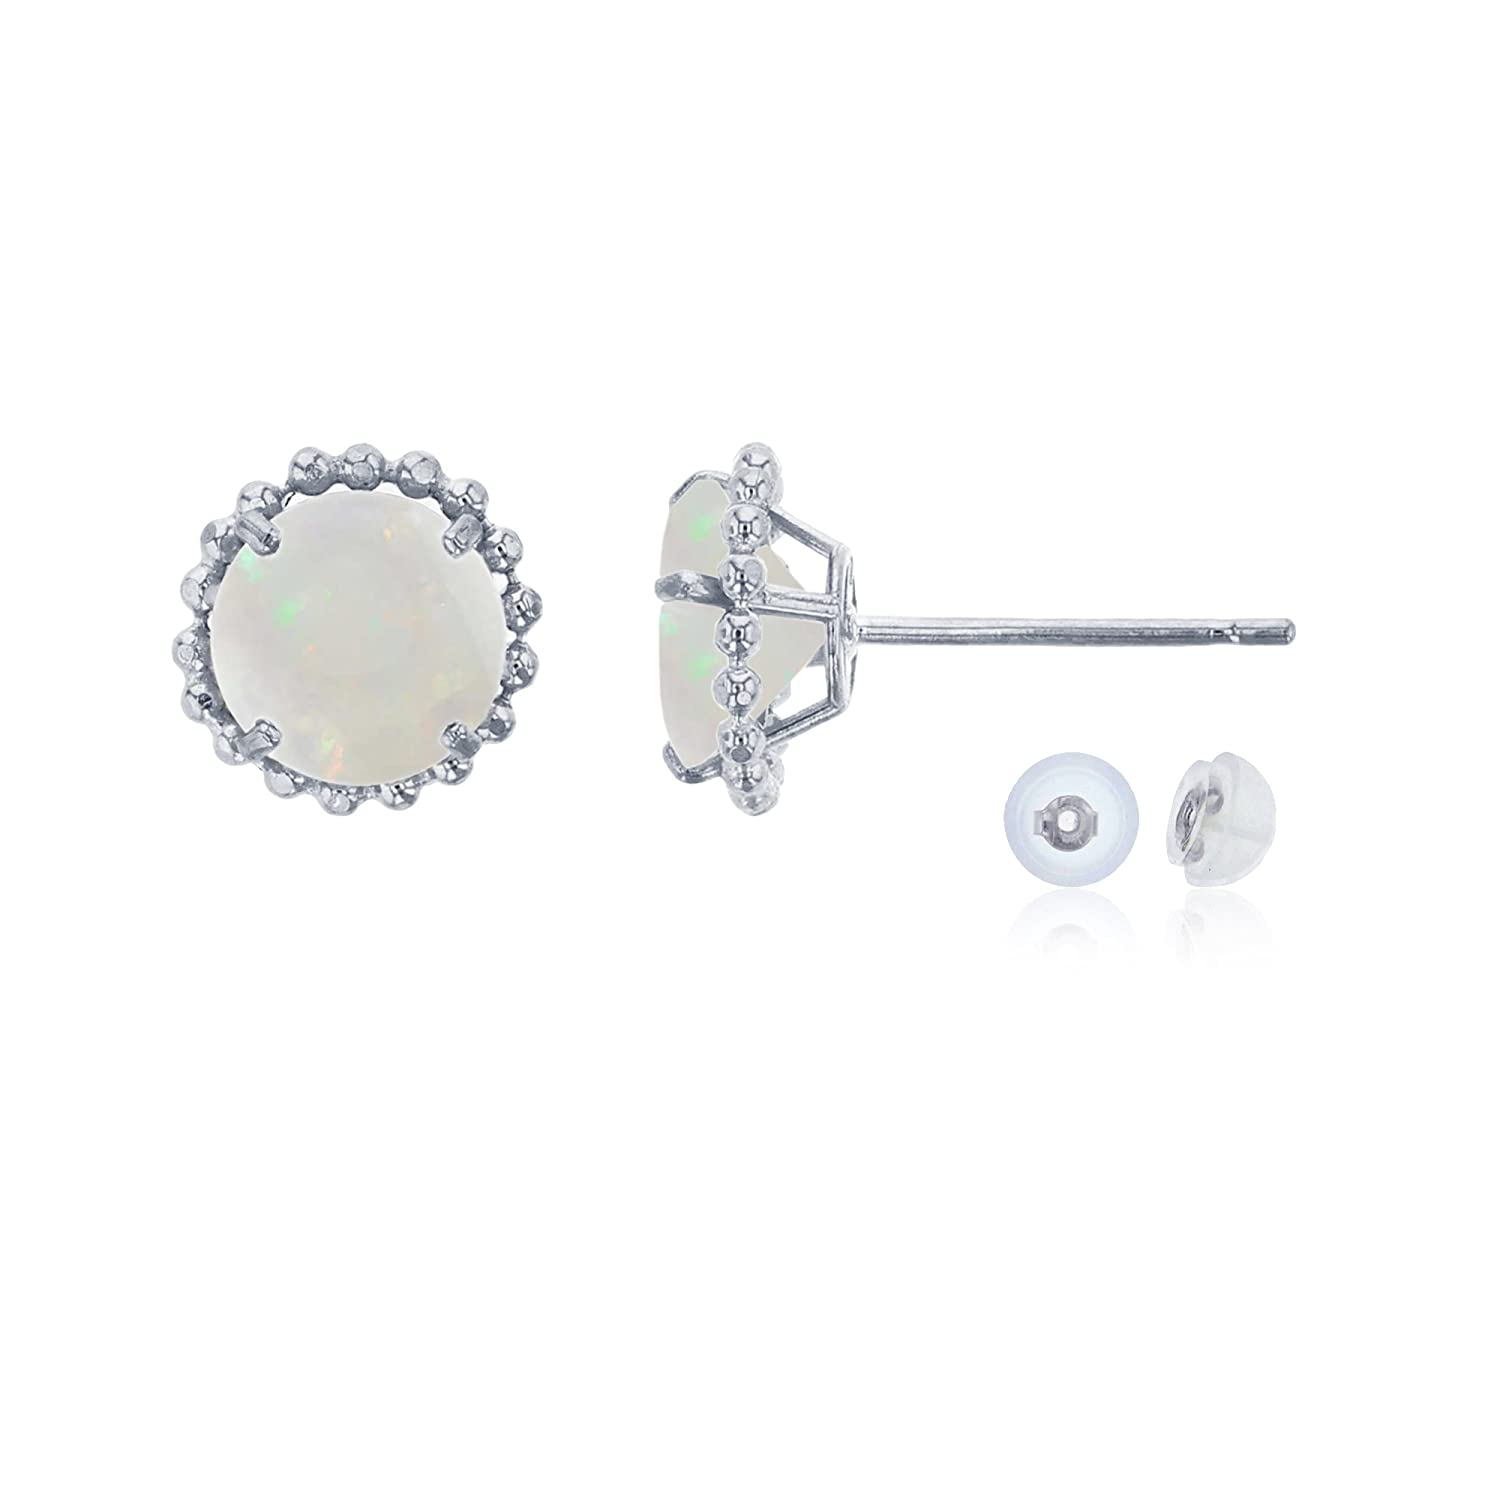 14K White Gold 5mm Round with Bead Frame Stud Earring with Silicone Back